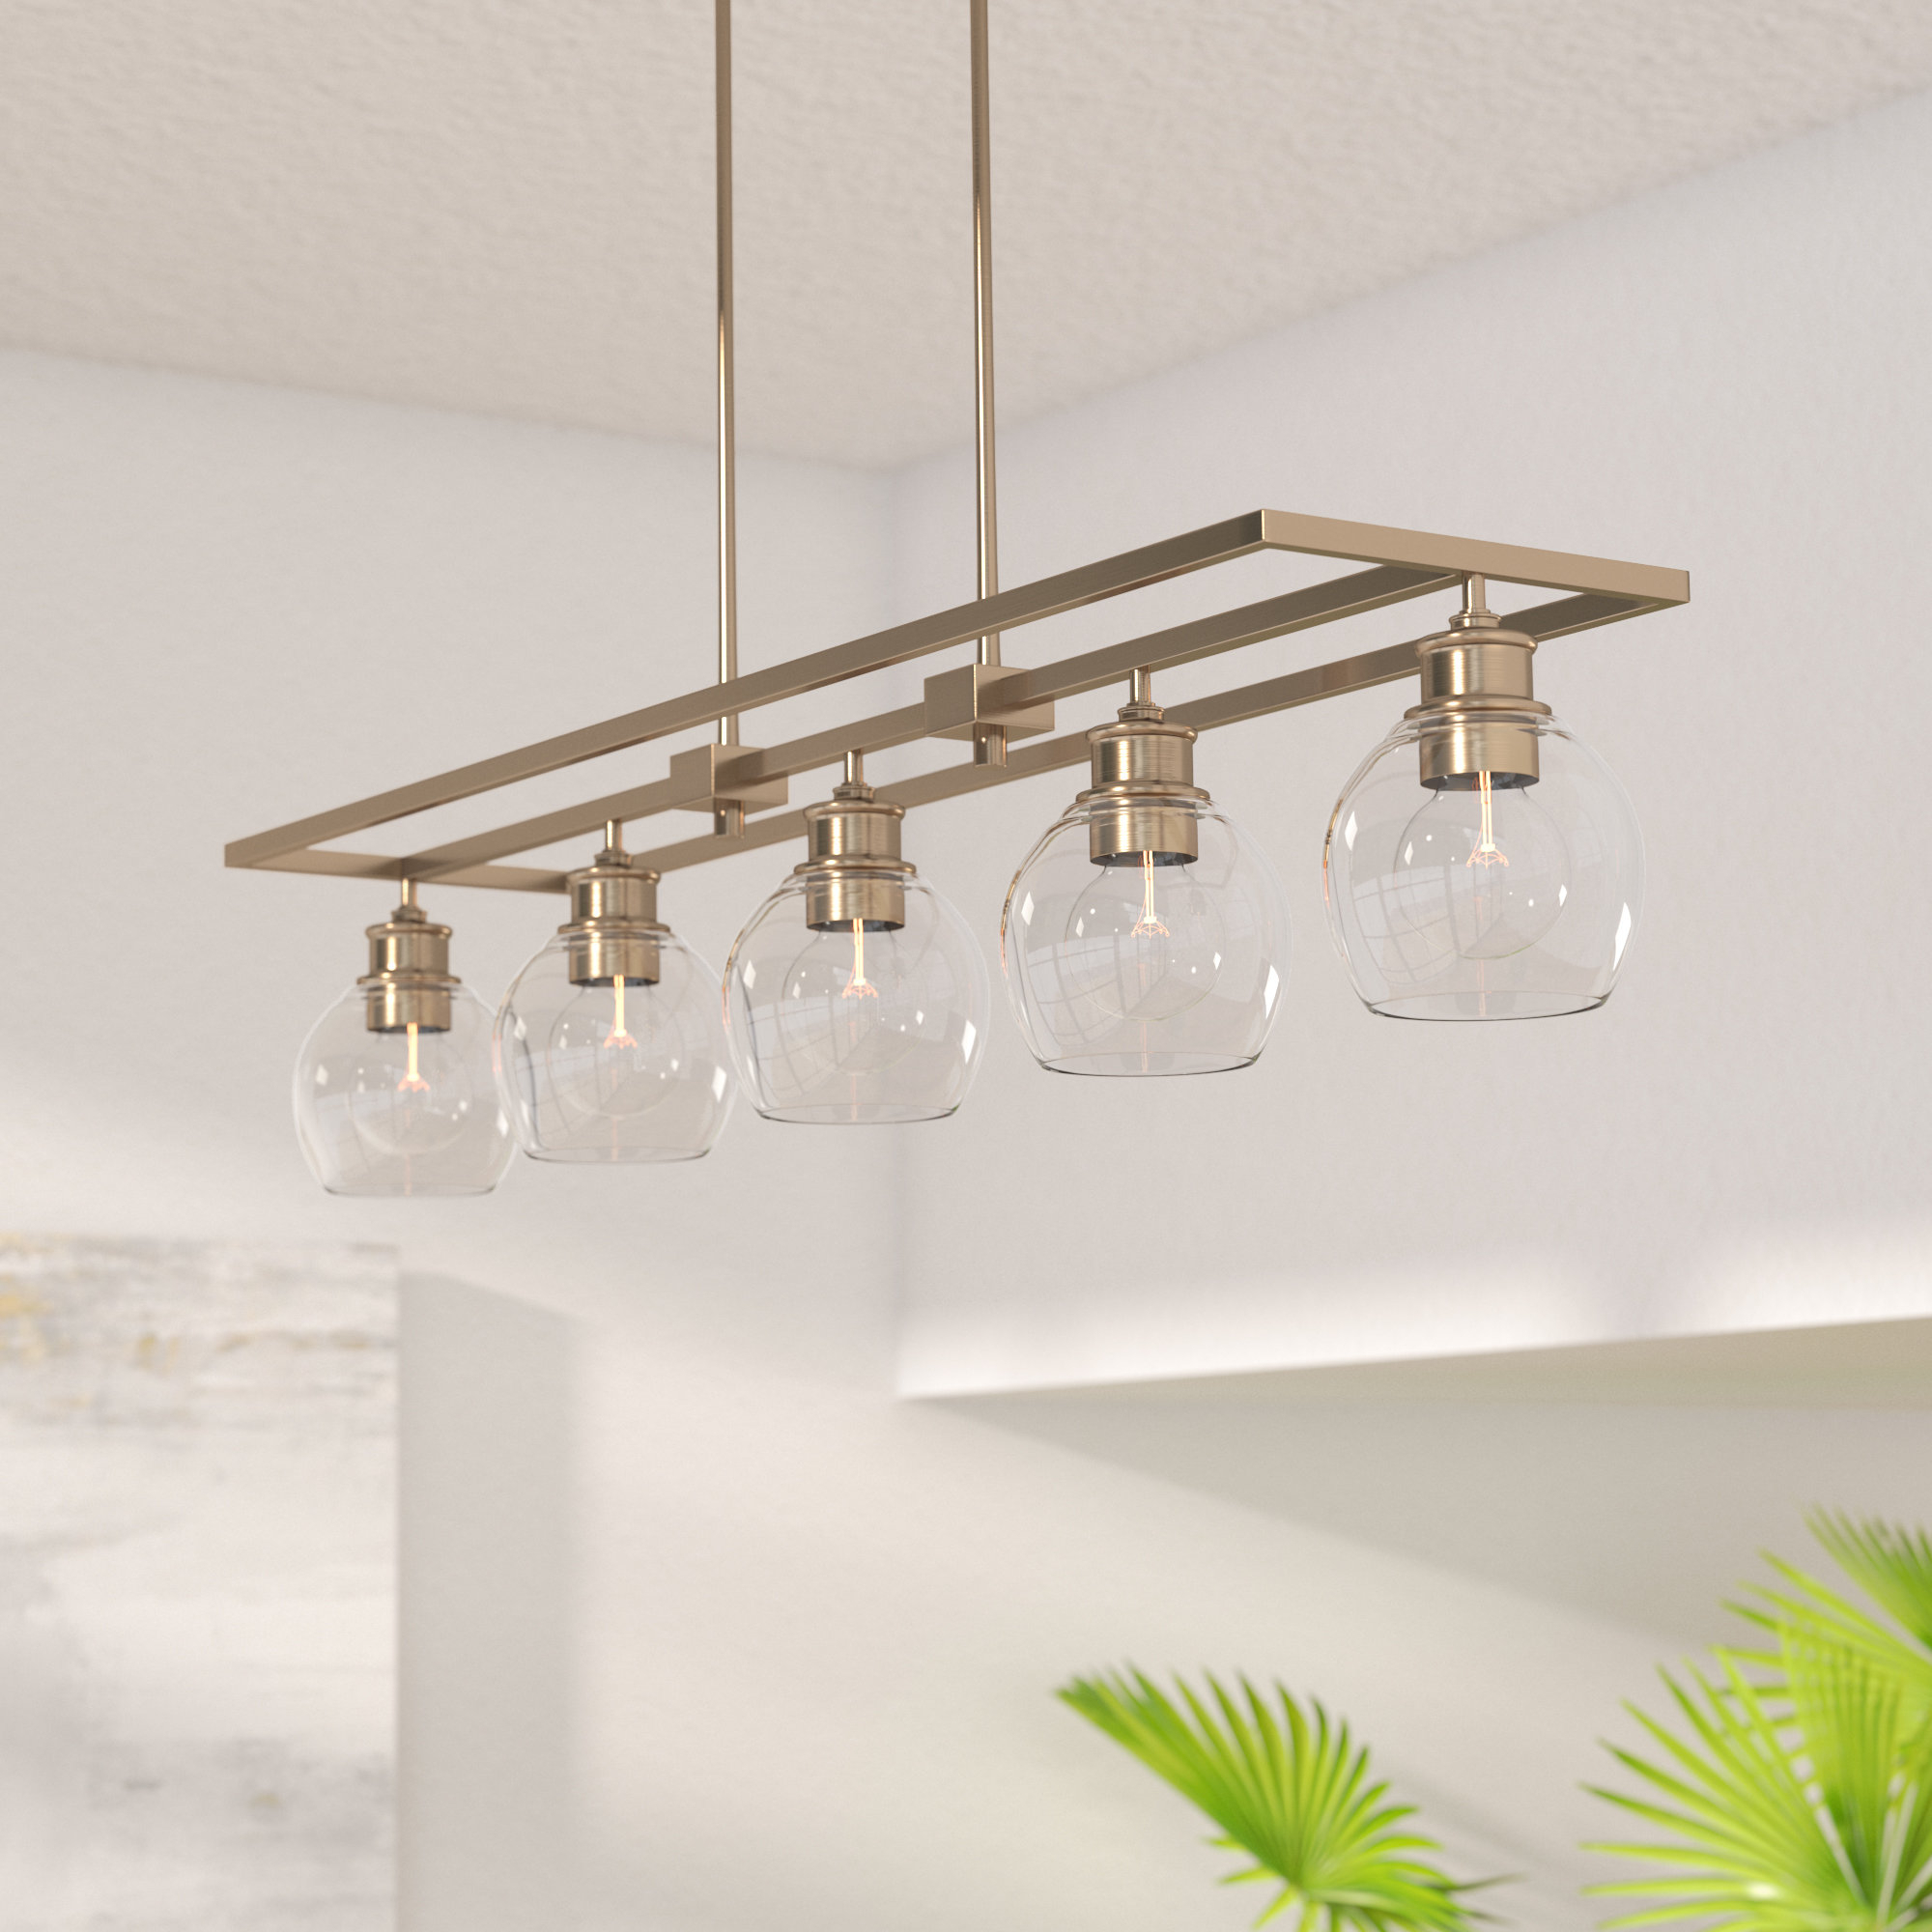 Most Recently Released Bautista 6 Light Kitchen Island Bulb Pendants Pertaining To 4 – 6 Light Kitchen Island Pendant Lighting You'll Love In (View 13 of 20)